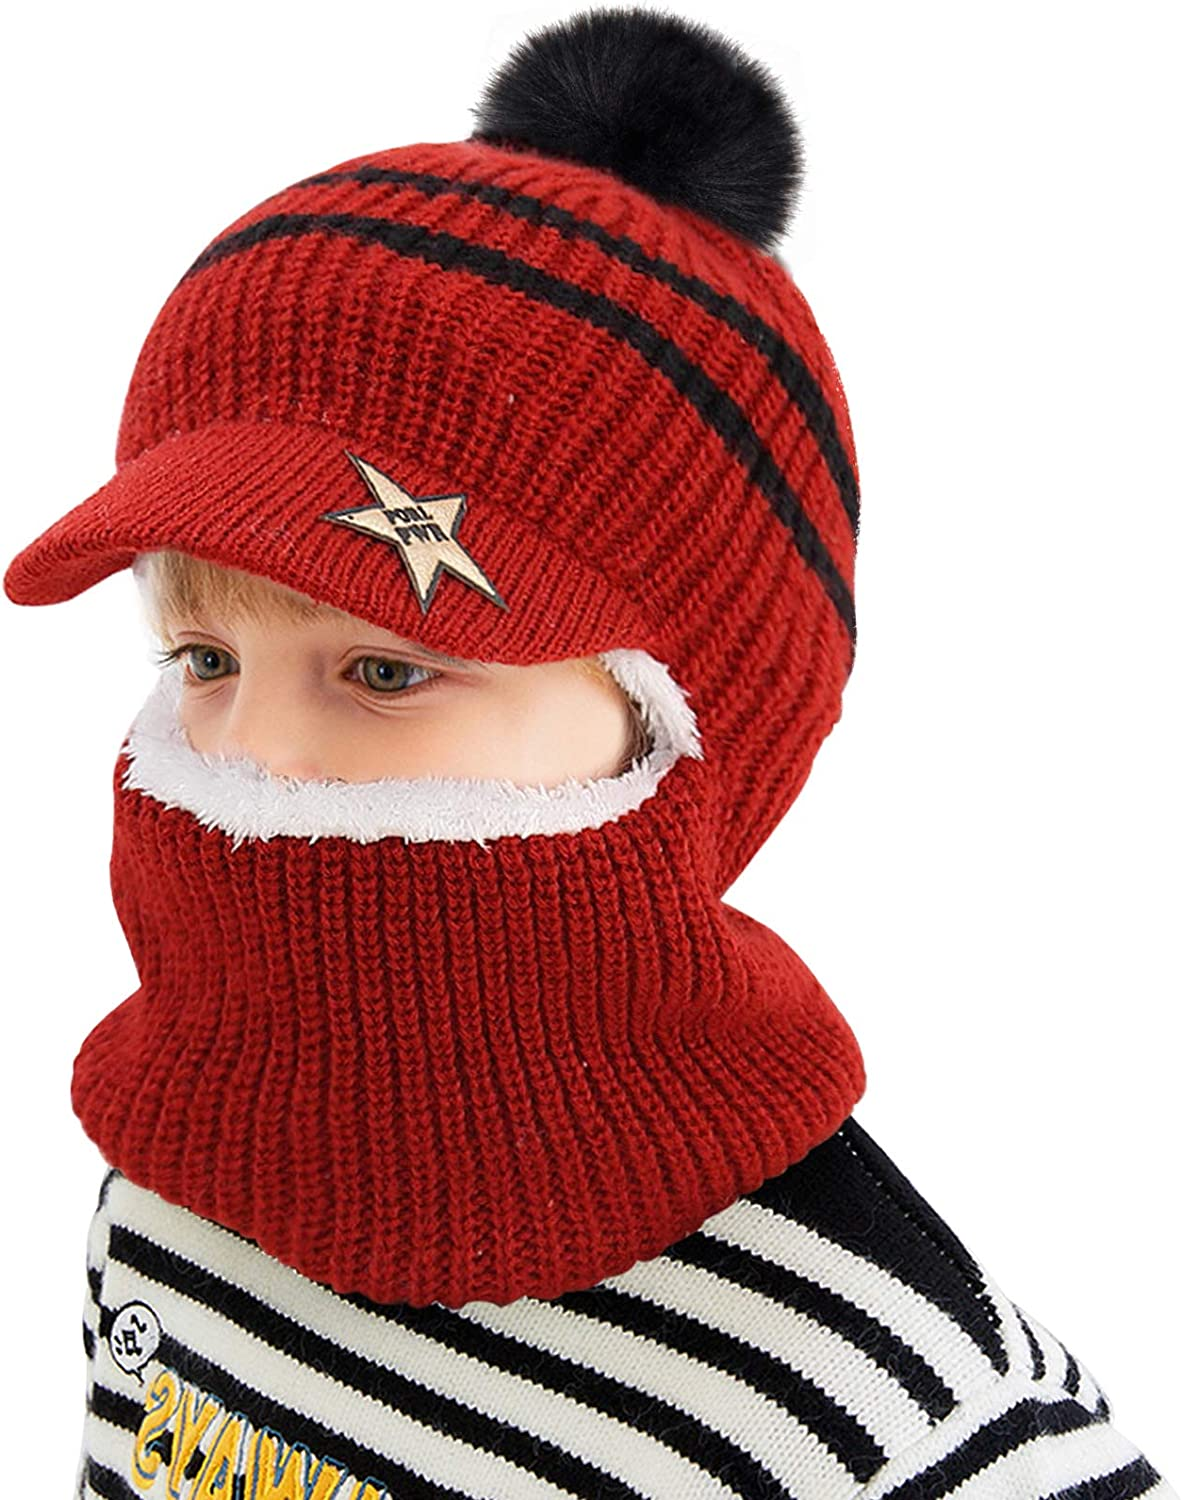 Wine Red Baby Knitted Wool Hat Scarf Designed with Eaves- Warm Plush Wool Lined Knit Hood Beanie Kids Ski Skull Cap with Neck Warmer Earflaps for Children Toddlers Cold Weather Outdoor Sports